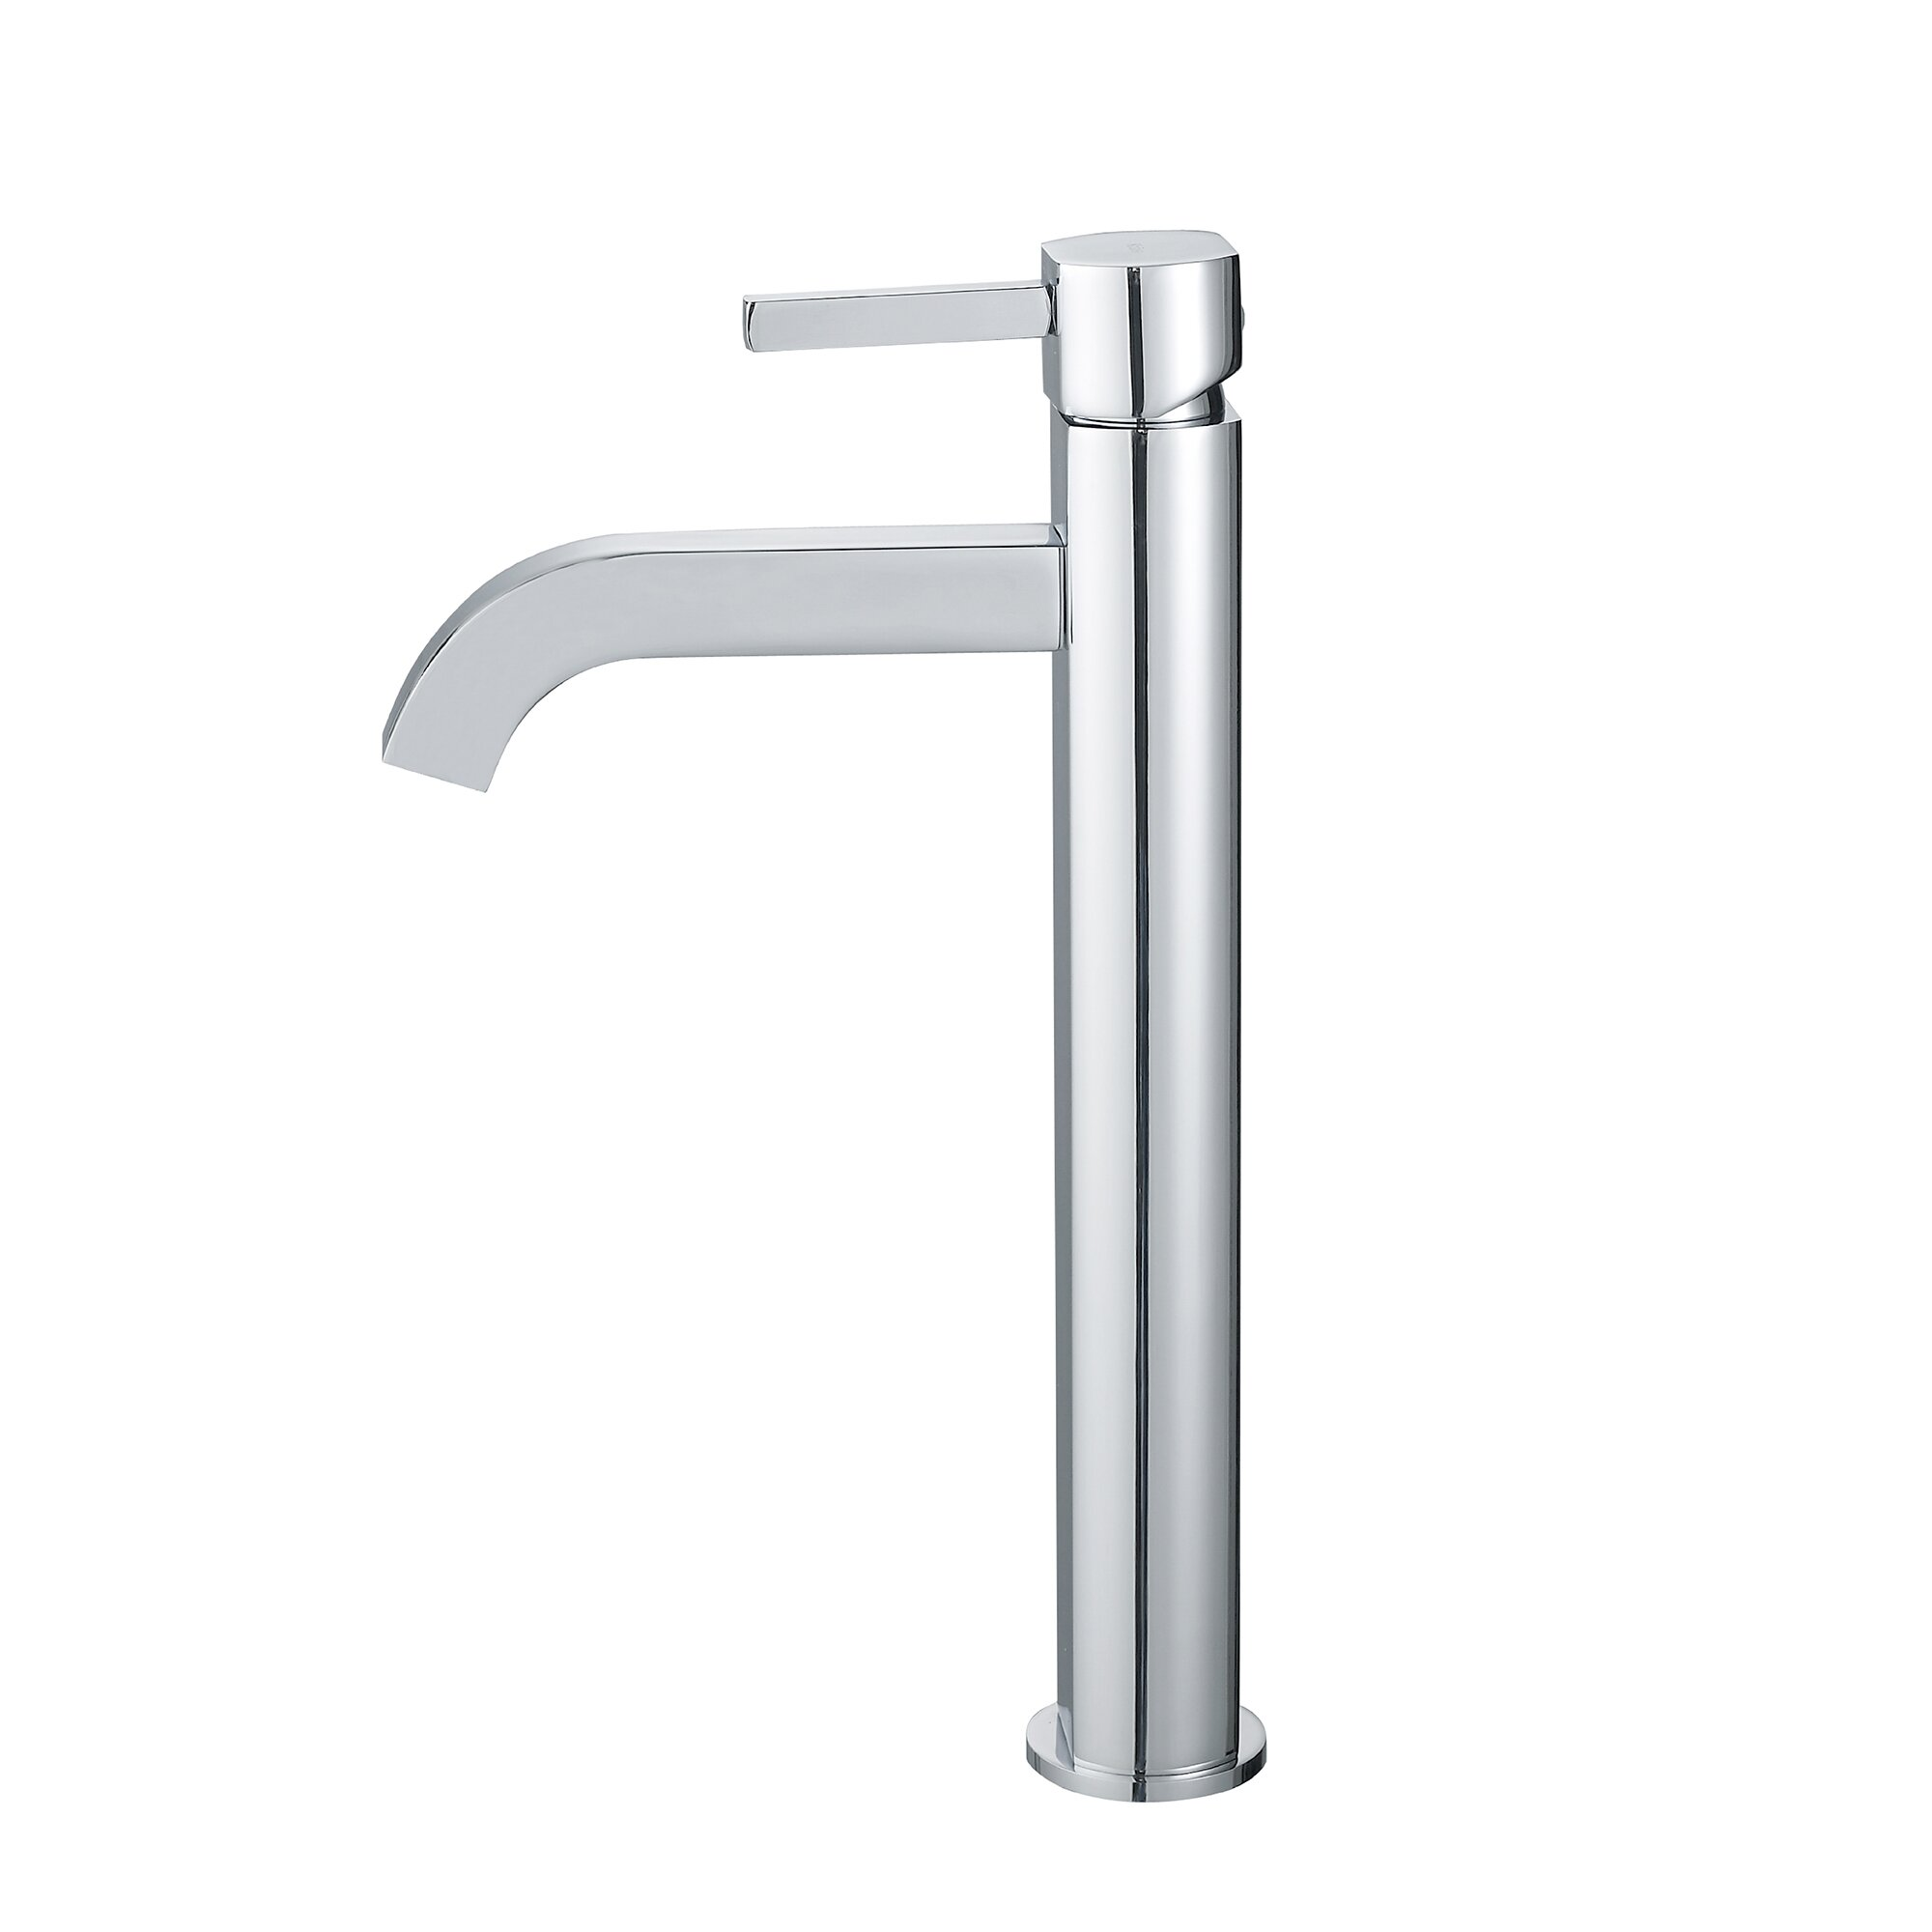 Kraus Ramus Single Handle Vessel Sink Bathroom Faucet Reviews Wayfair